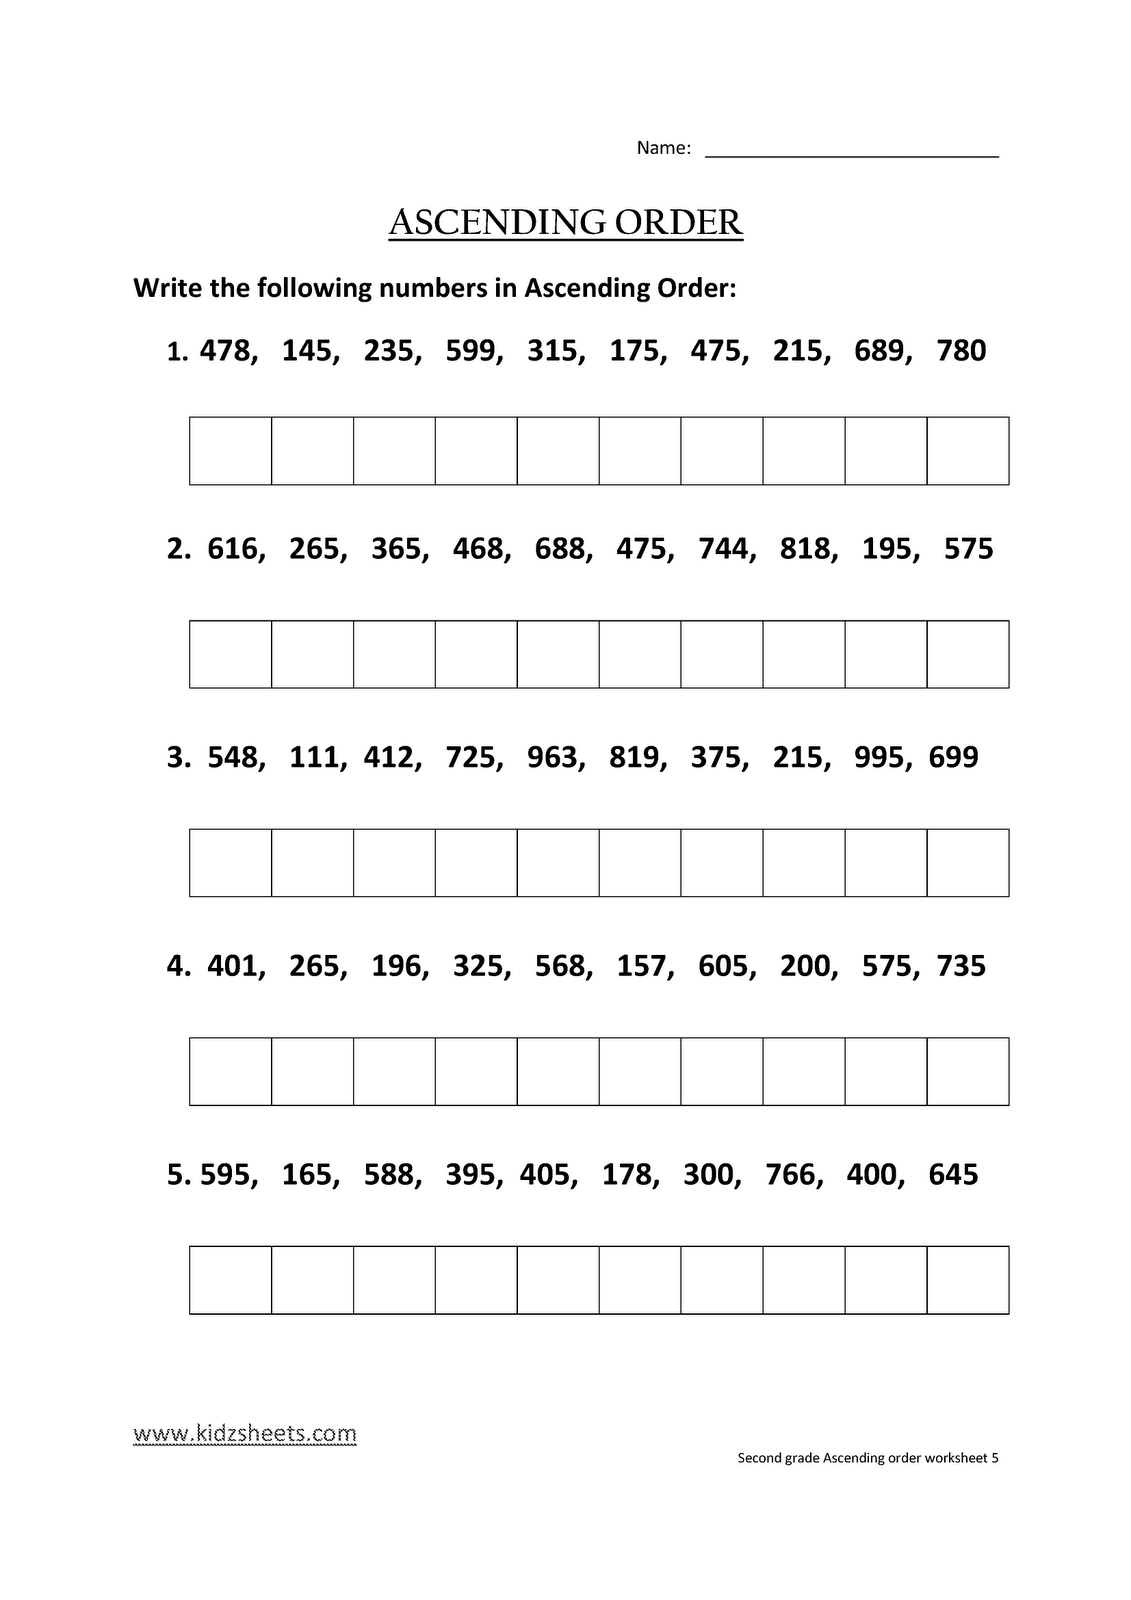 Kindergarten Math Ascending Order Worksheets - Preschool Worksheet Gallery [ 1600 x 1131 Pixel ]